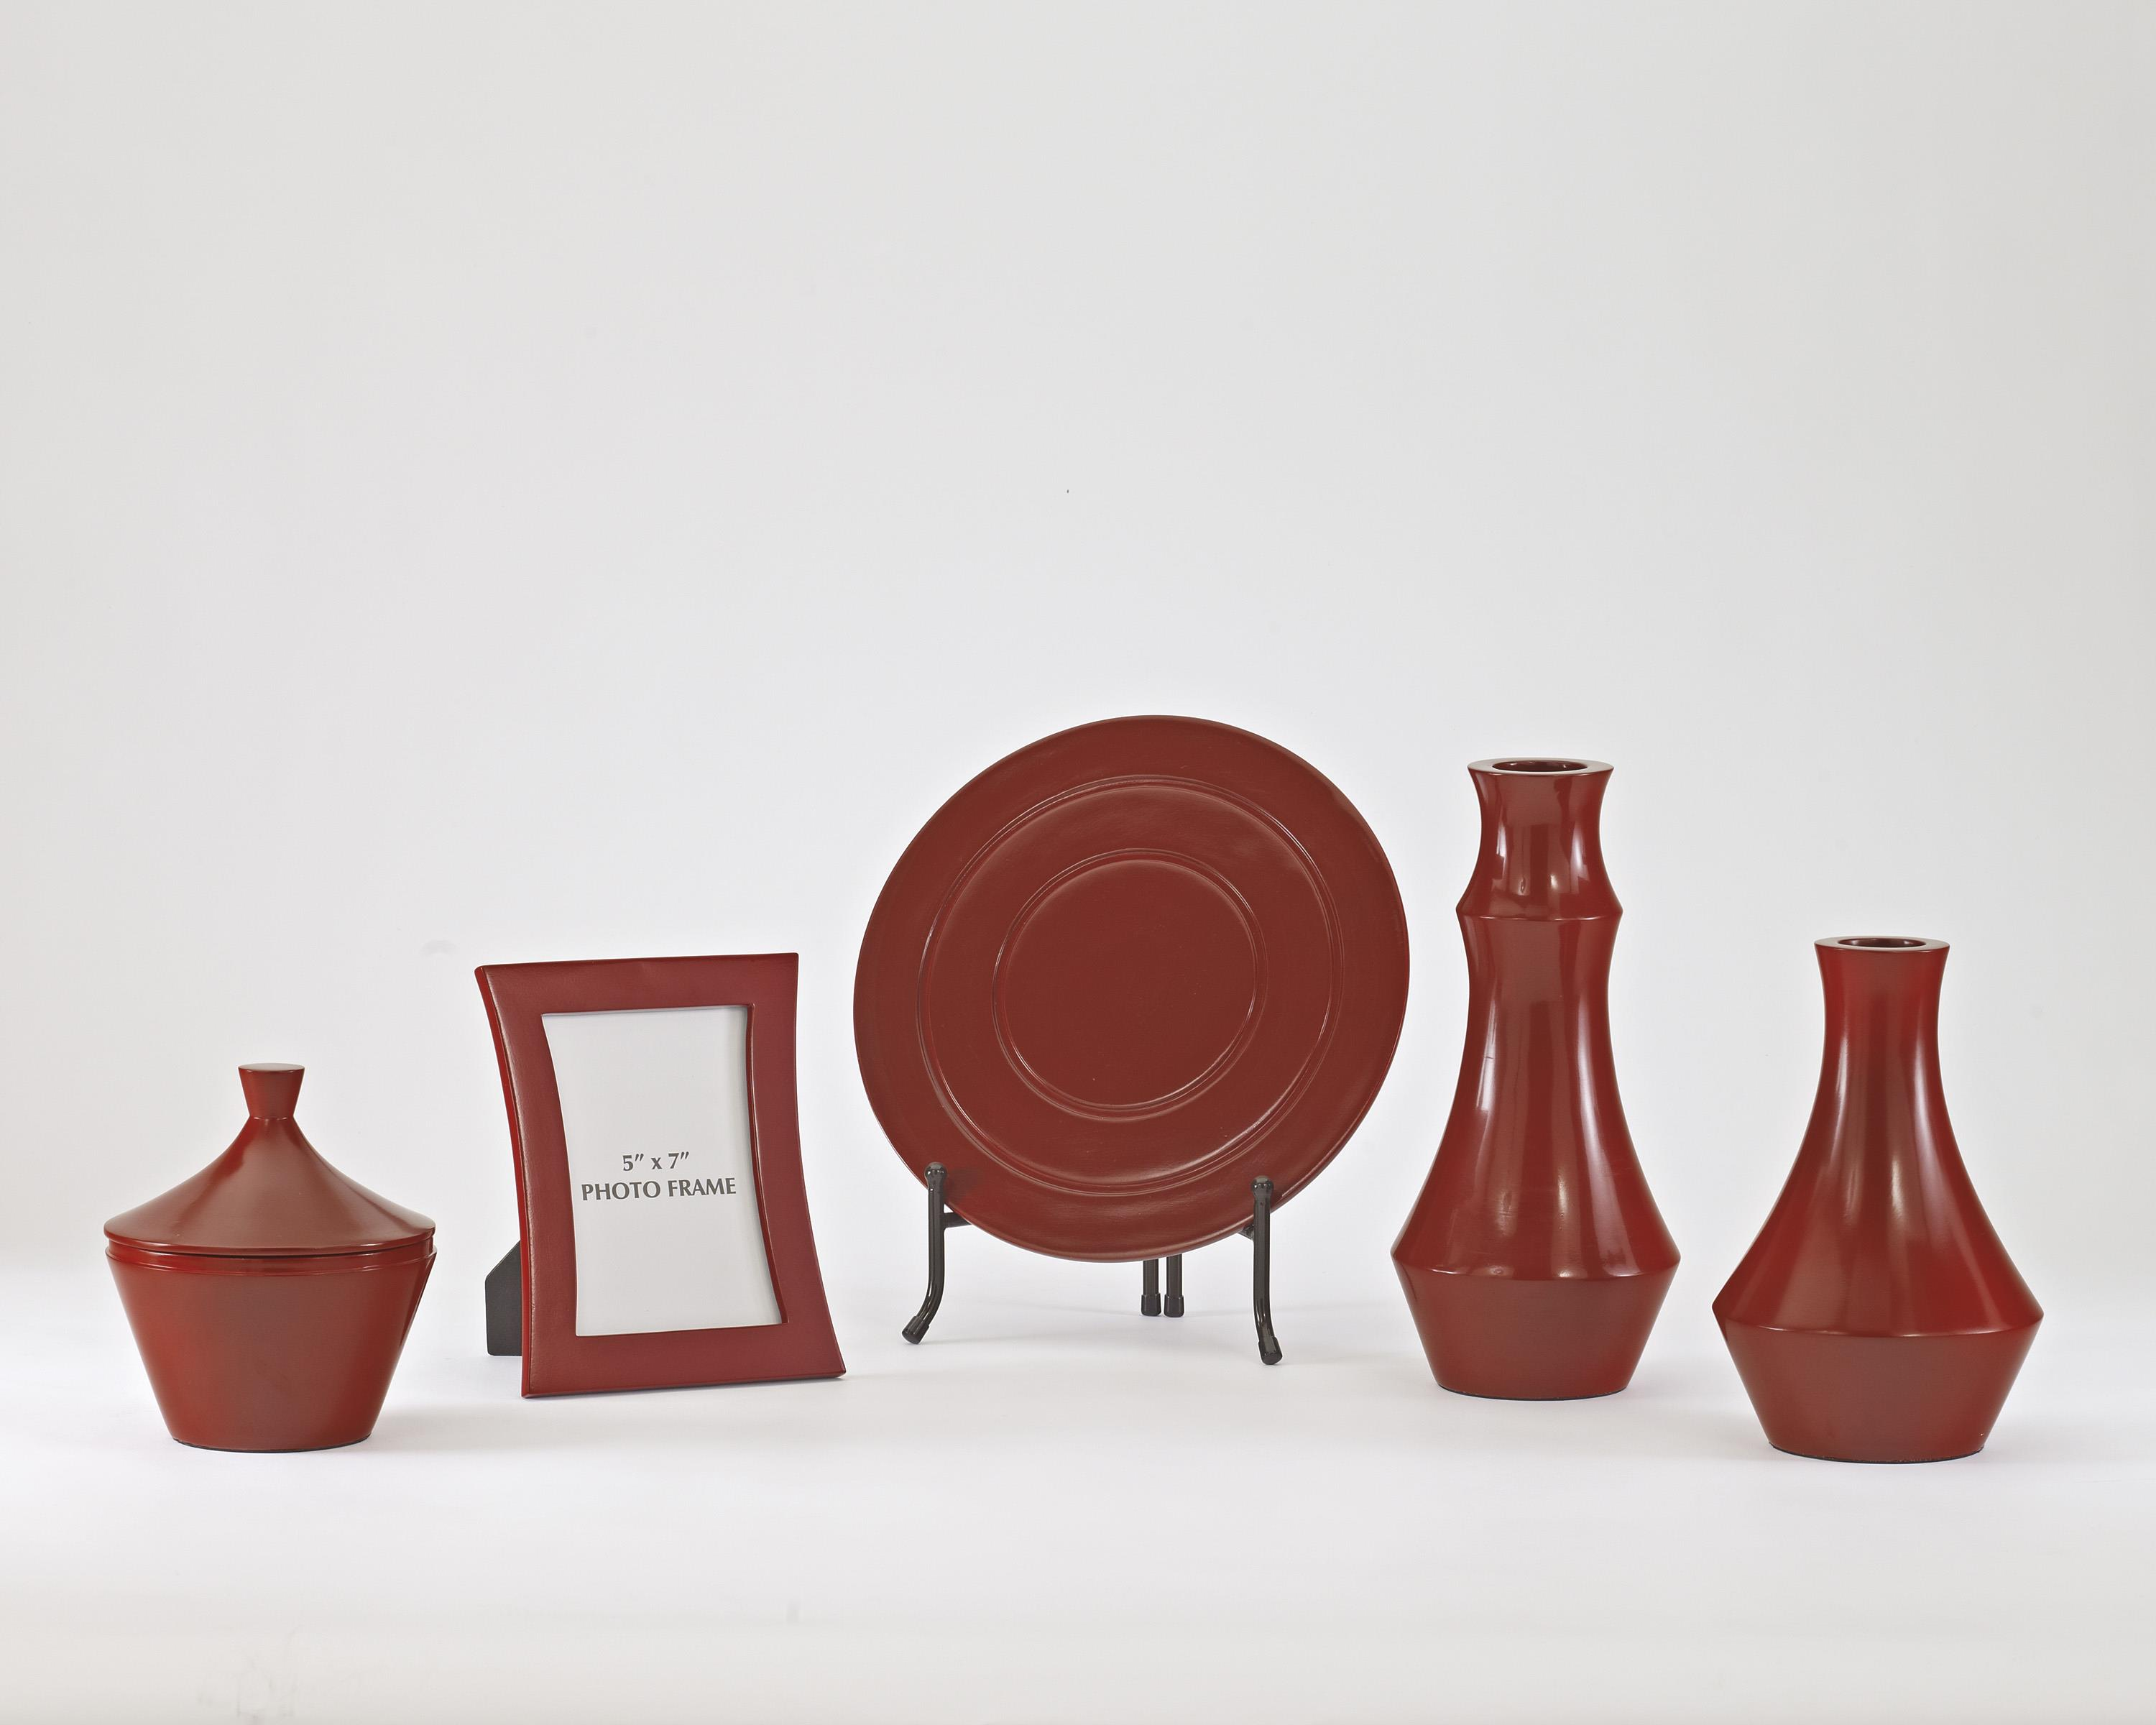 Signature Design by Ashley Furniture Accents Sirilla - Red Accessory Set - Item Number: A2C00105